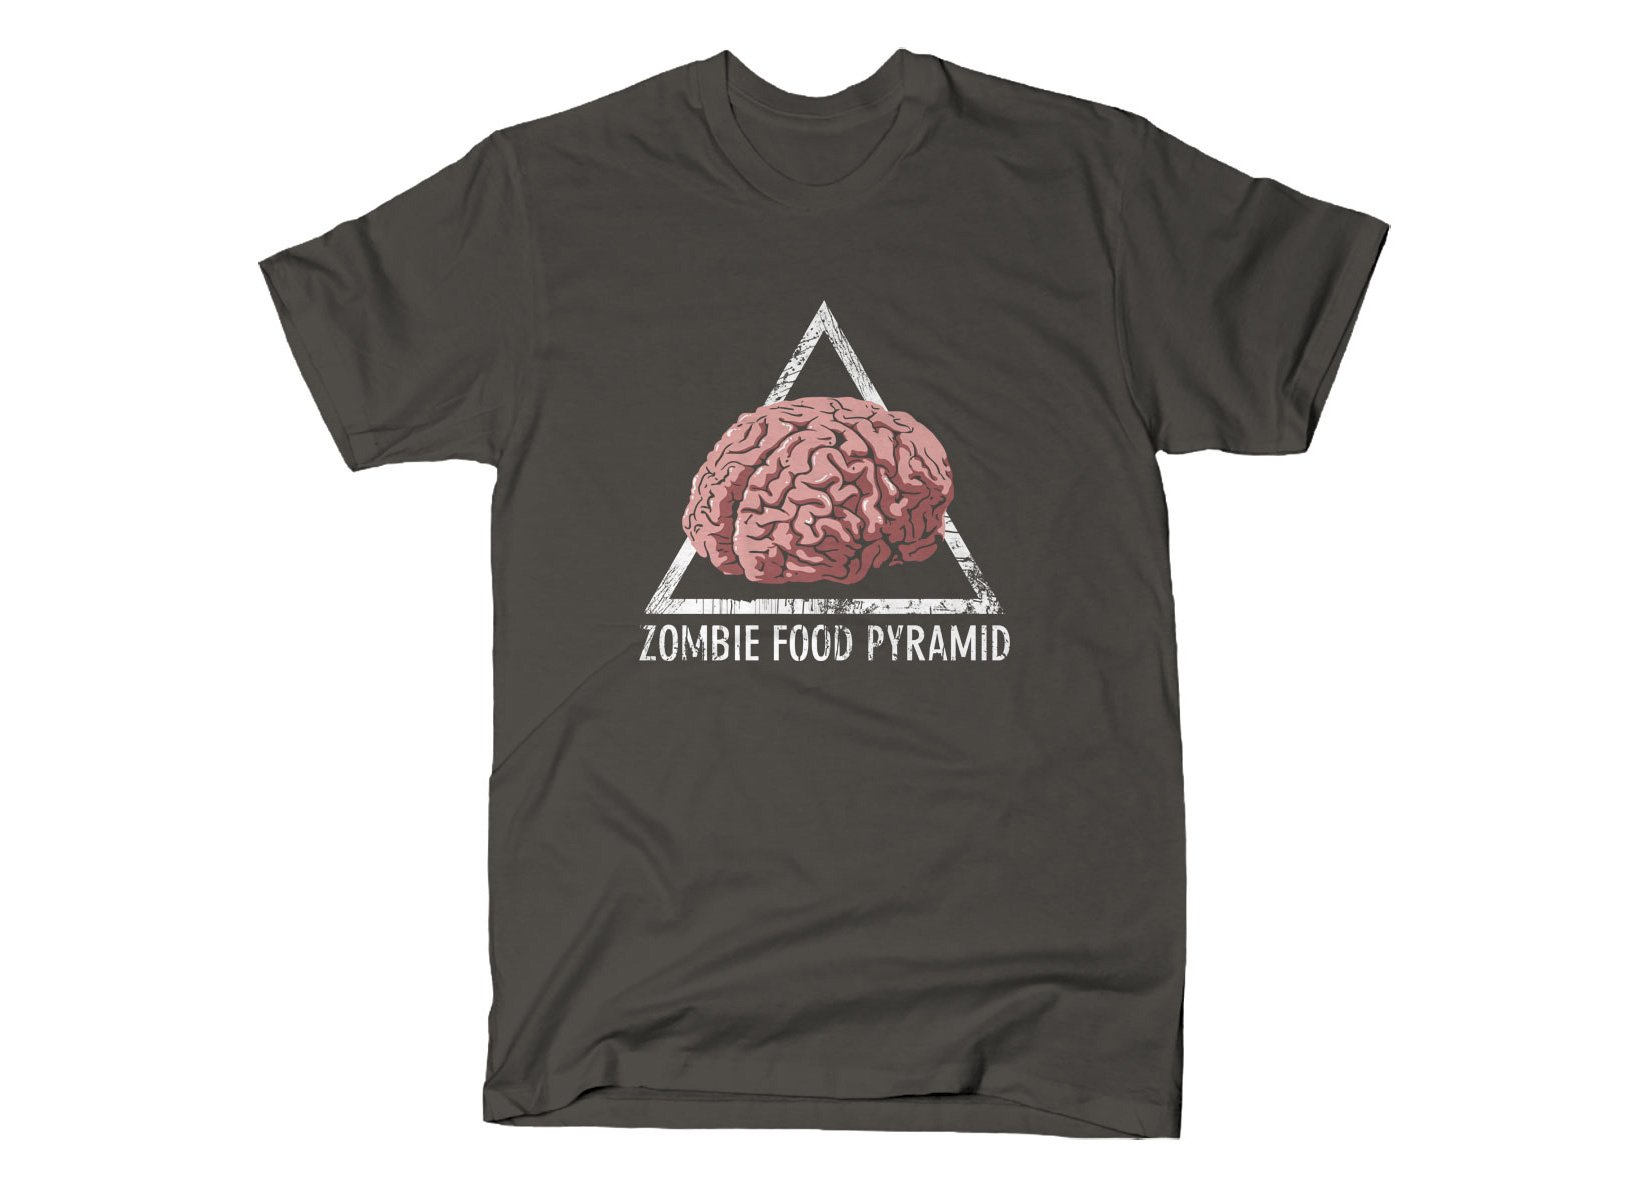 Zombie Food Pyramid on Mens T-Shirt